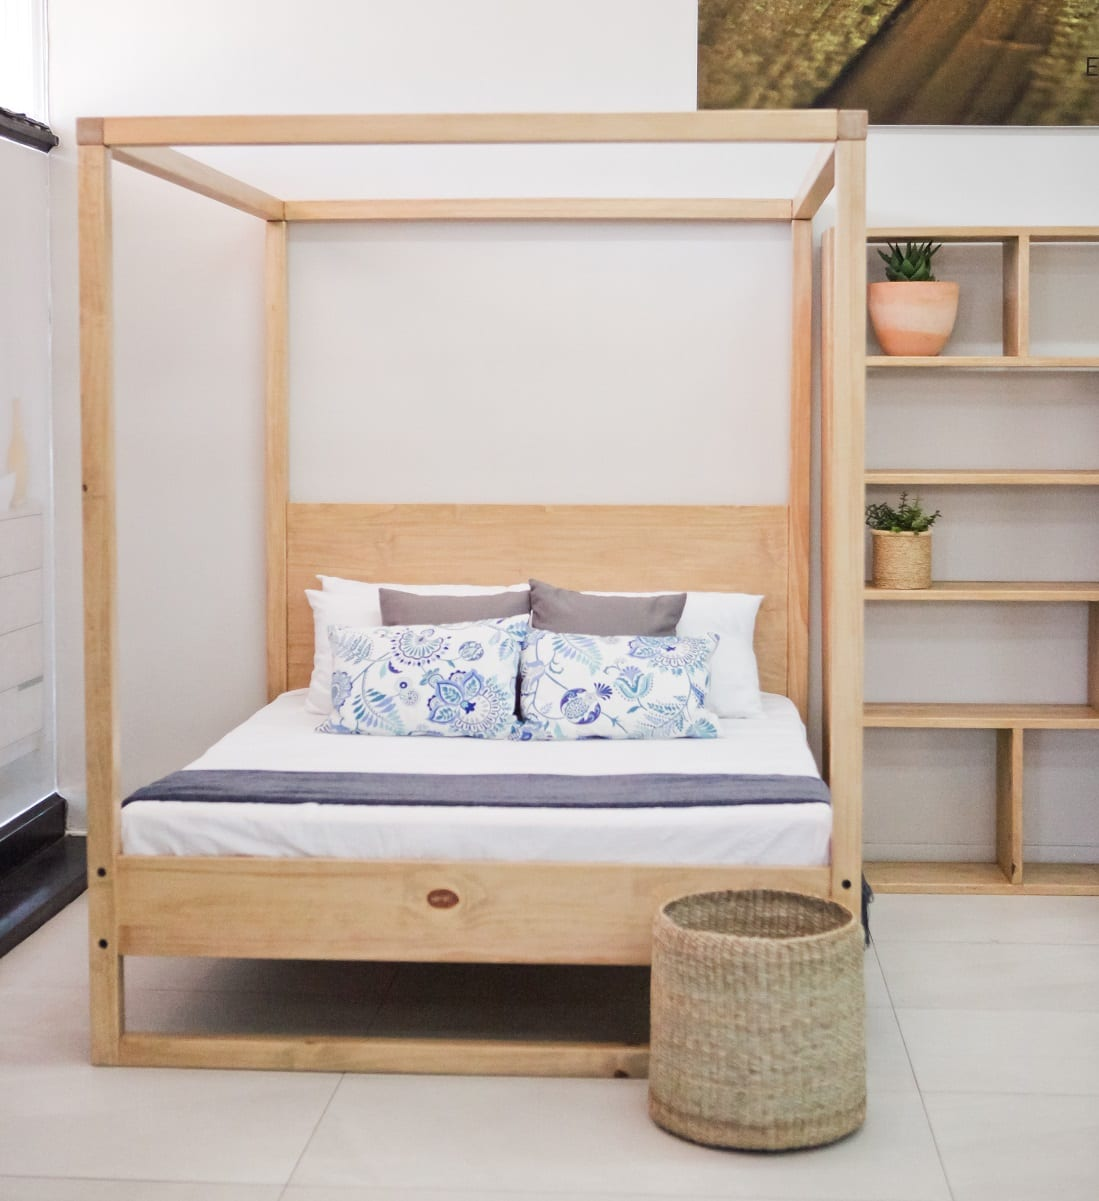 Bedroom Furniture Double 4-Poster Bed with Headboard beds